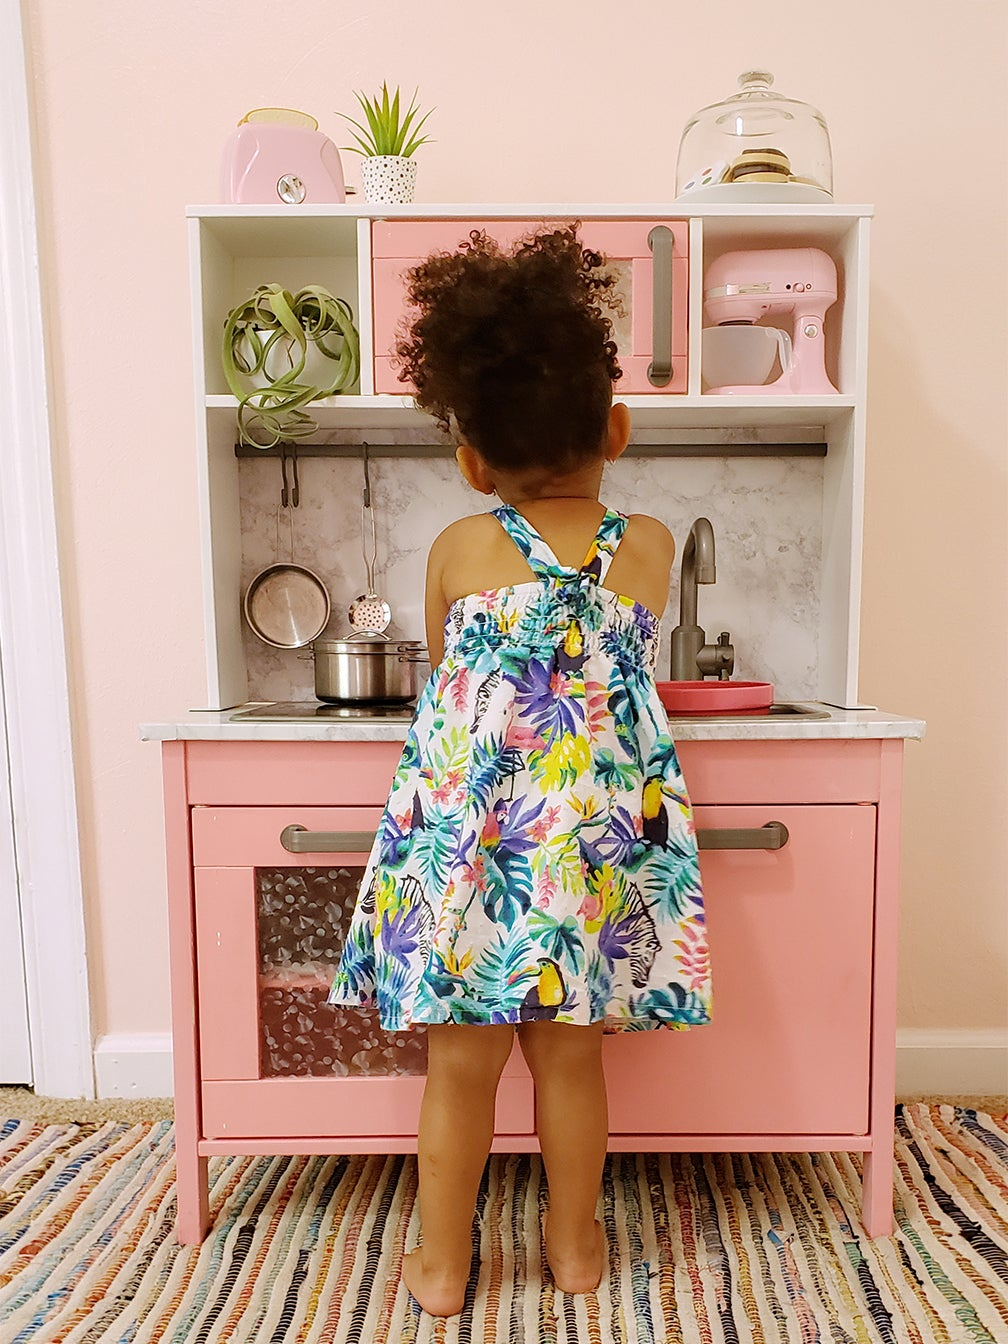 Toddler in front of pink play kitchen